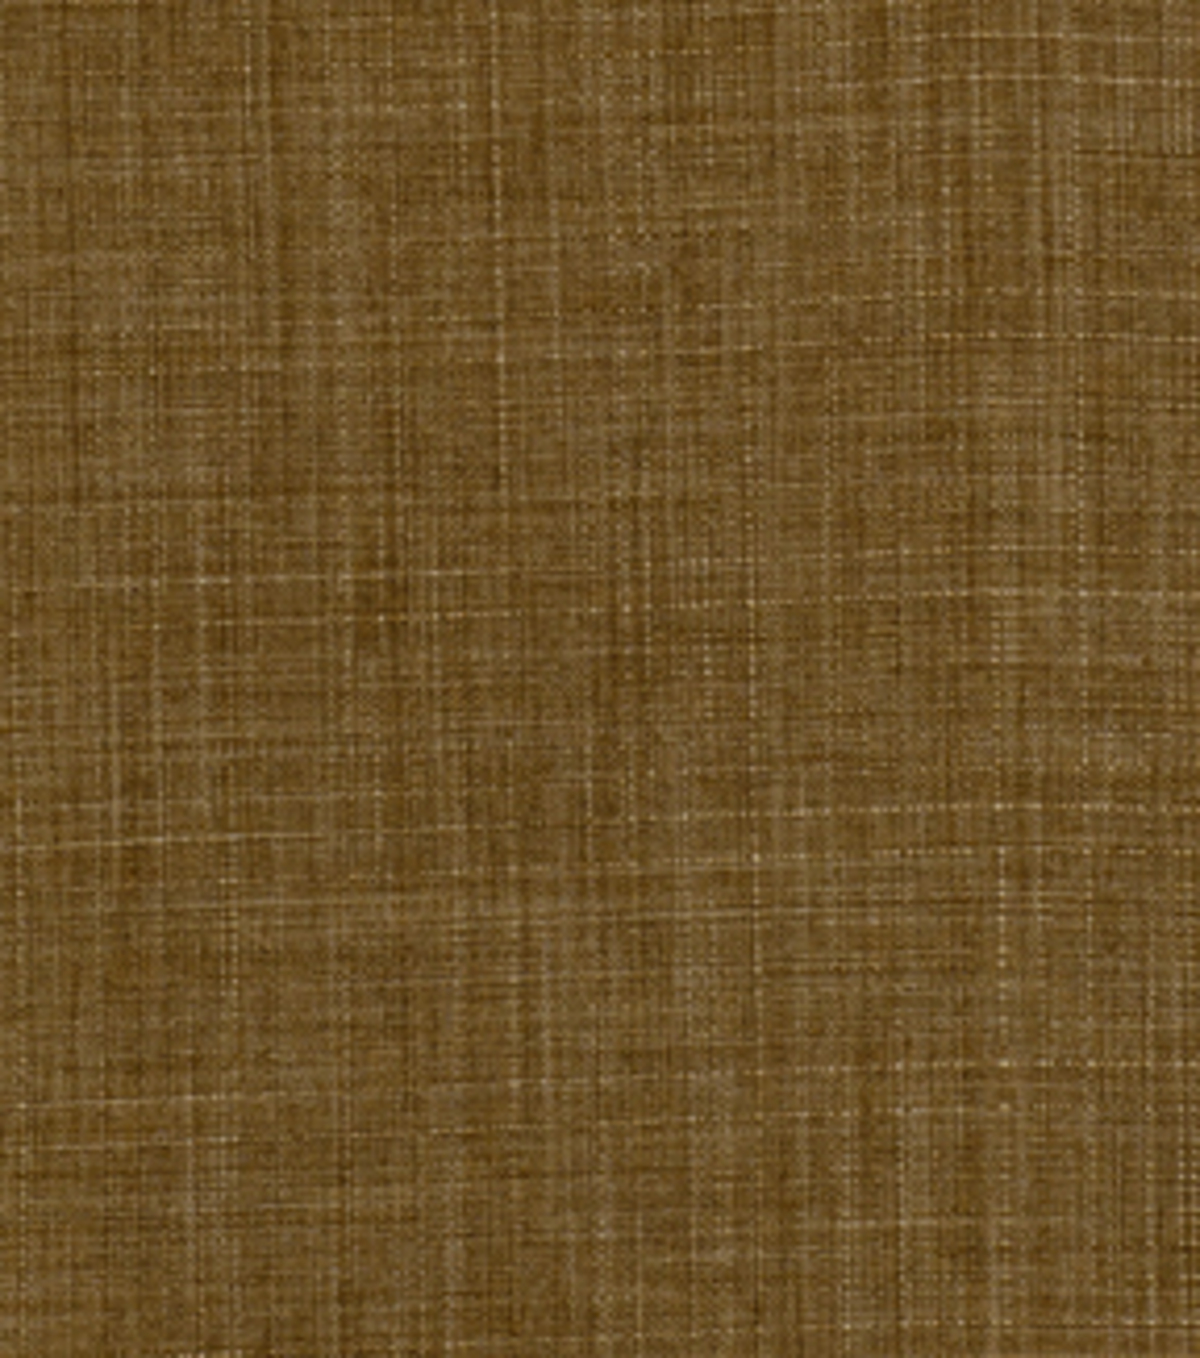 8\u0027\u0027x8\u0027\u0027 Home Decor Fabric Swatch-Solid Fabric Eaton Square Adrift Mushroom